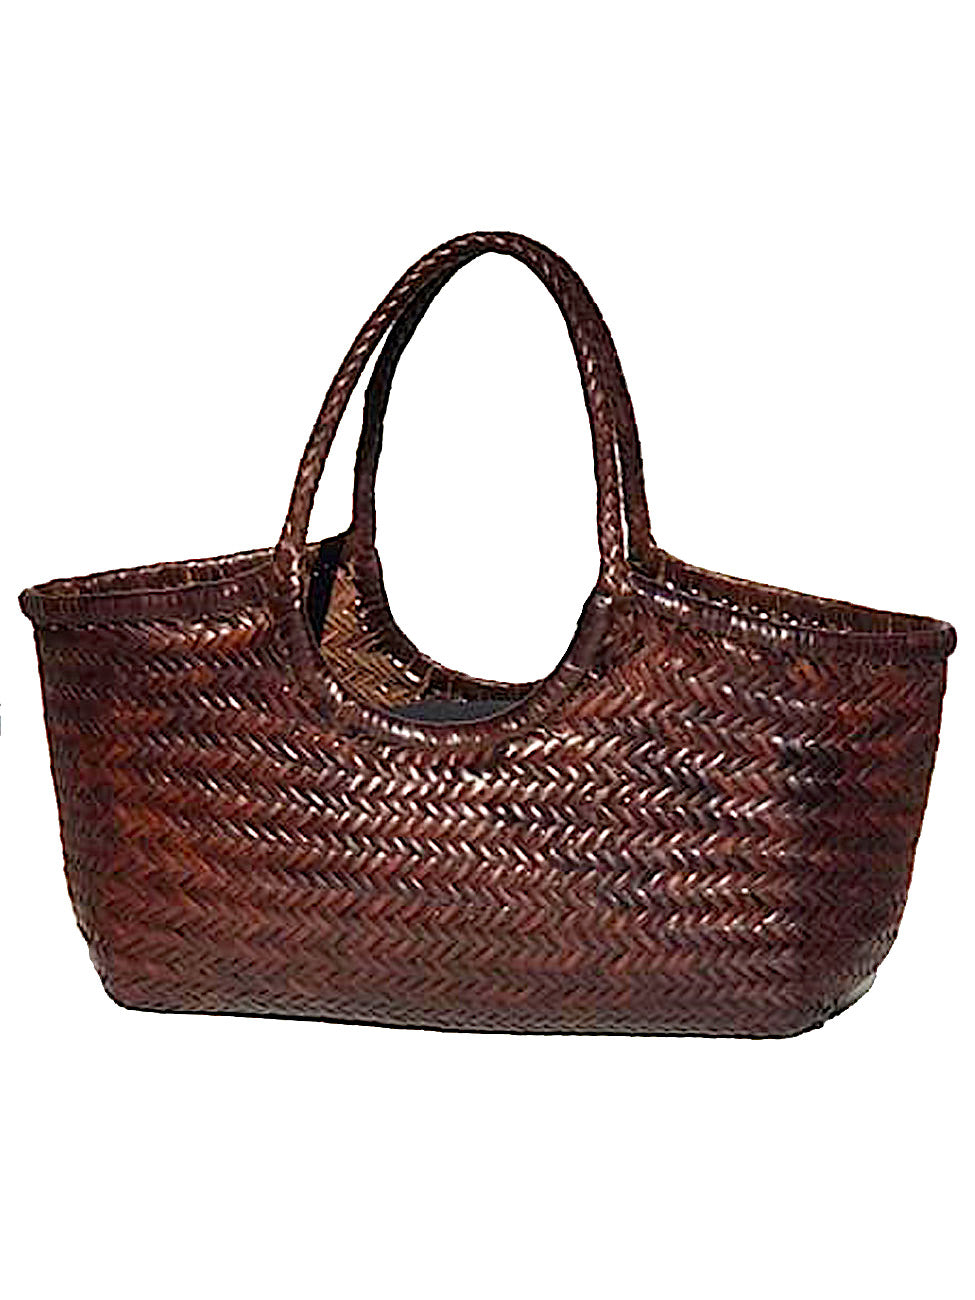 Woven Leather Nantucket Tote Bag